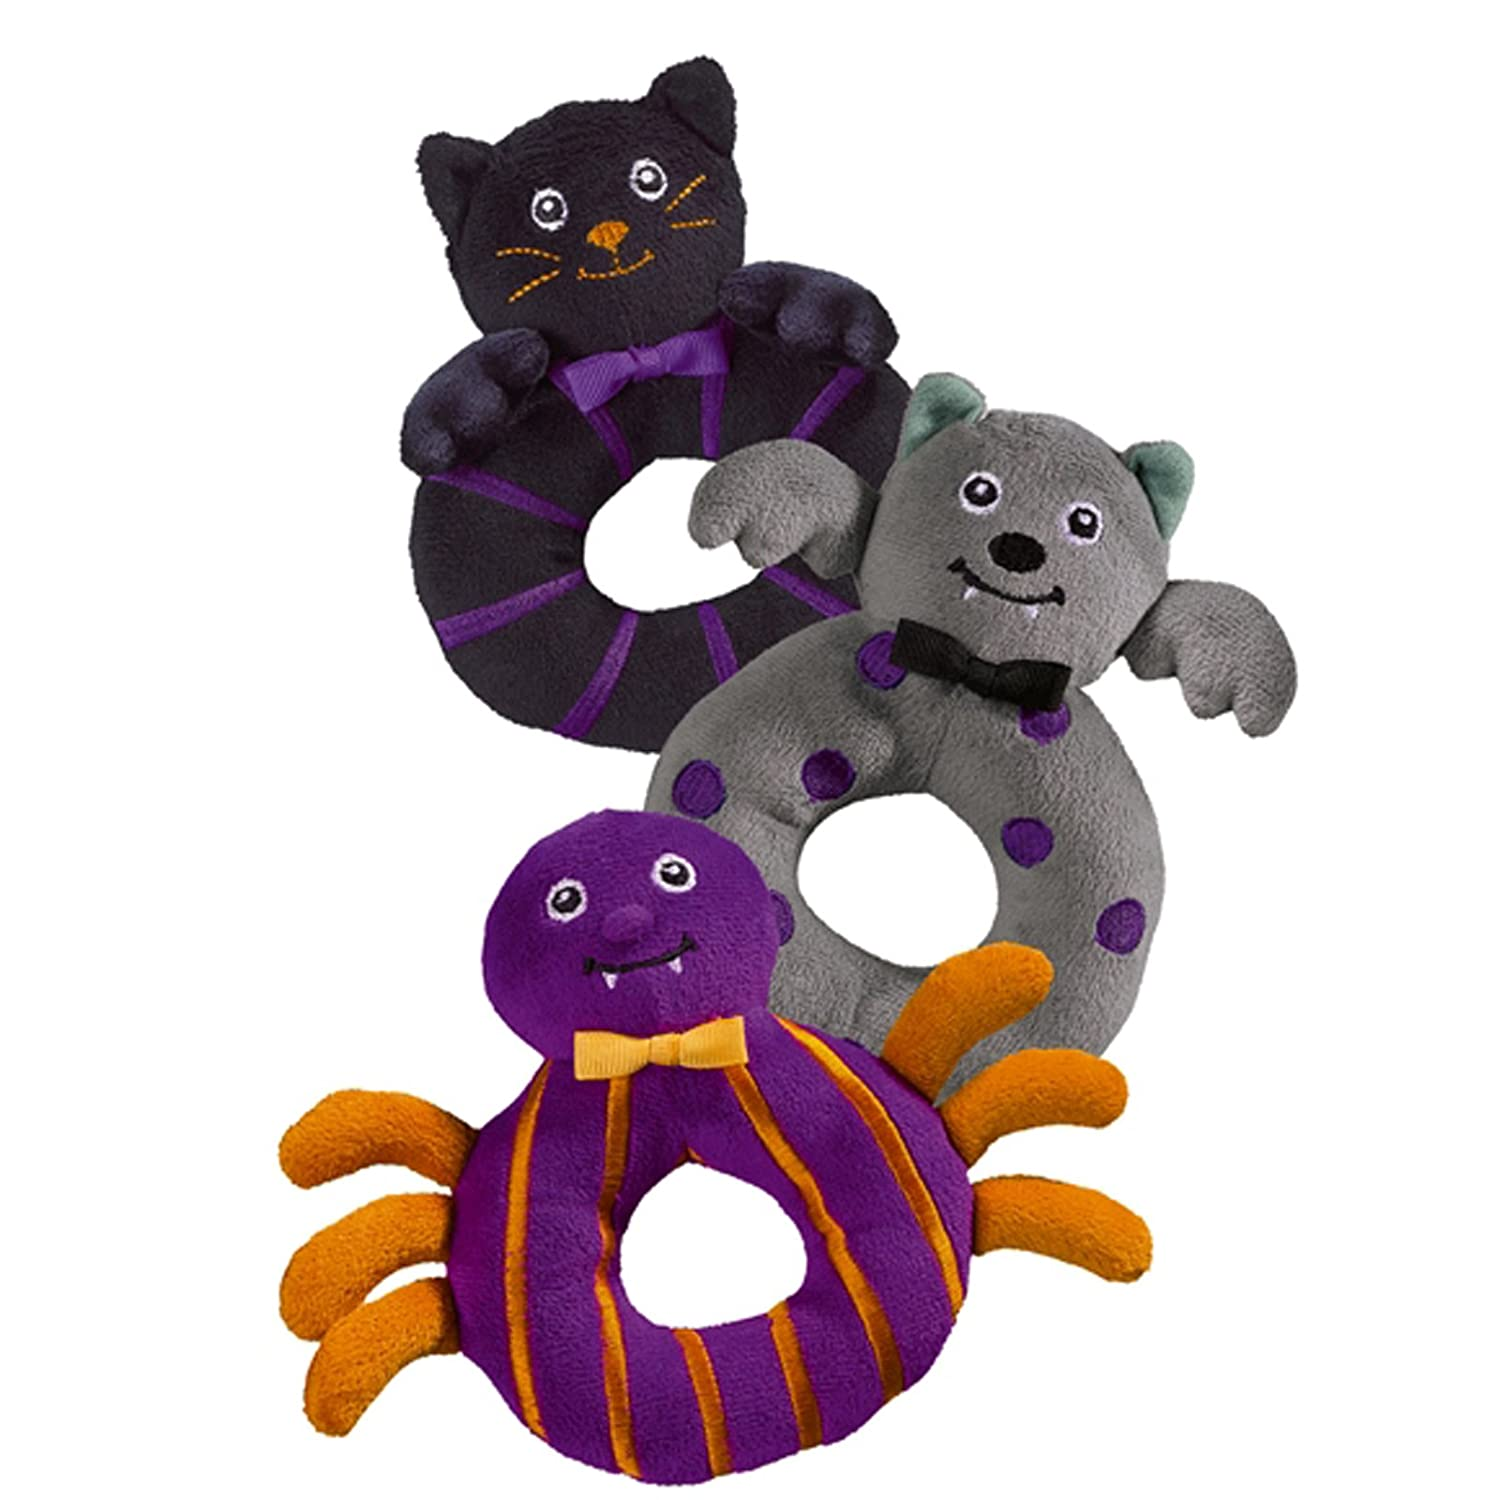 Toys For Halloween : Halloween toys and gift ideas for baby s first boo